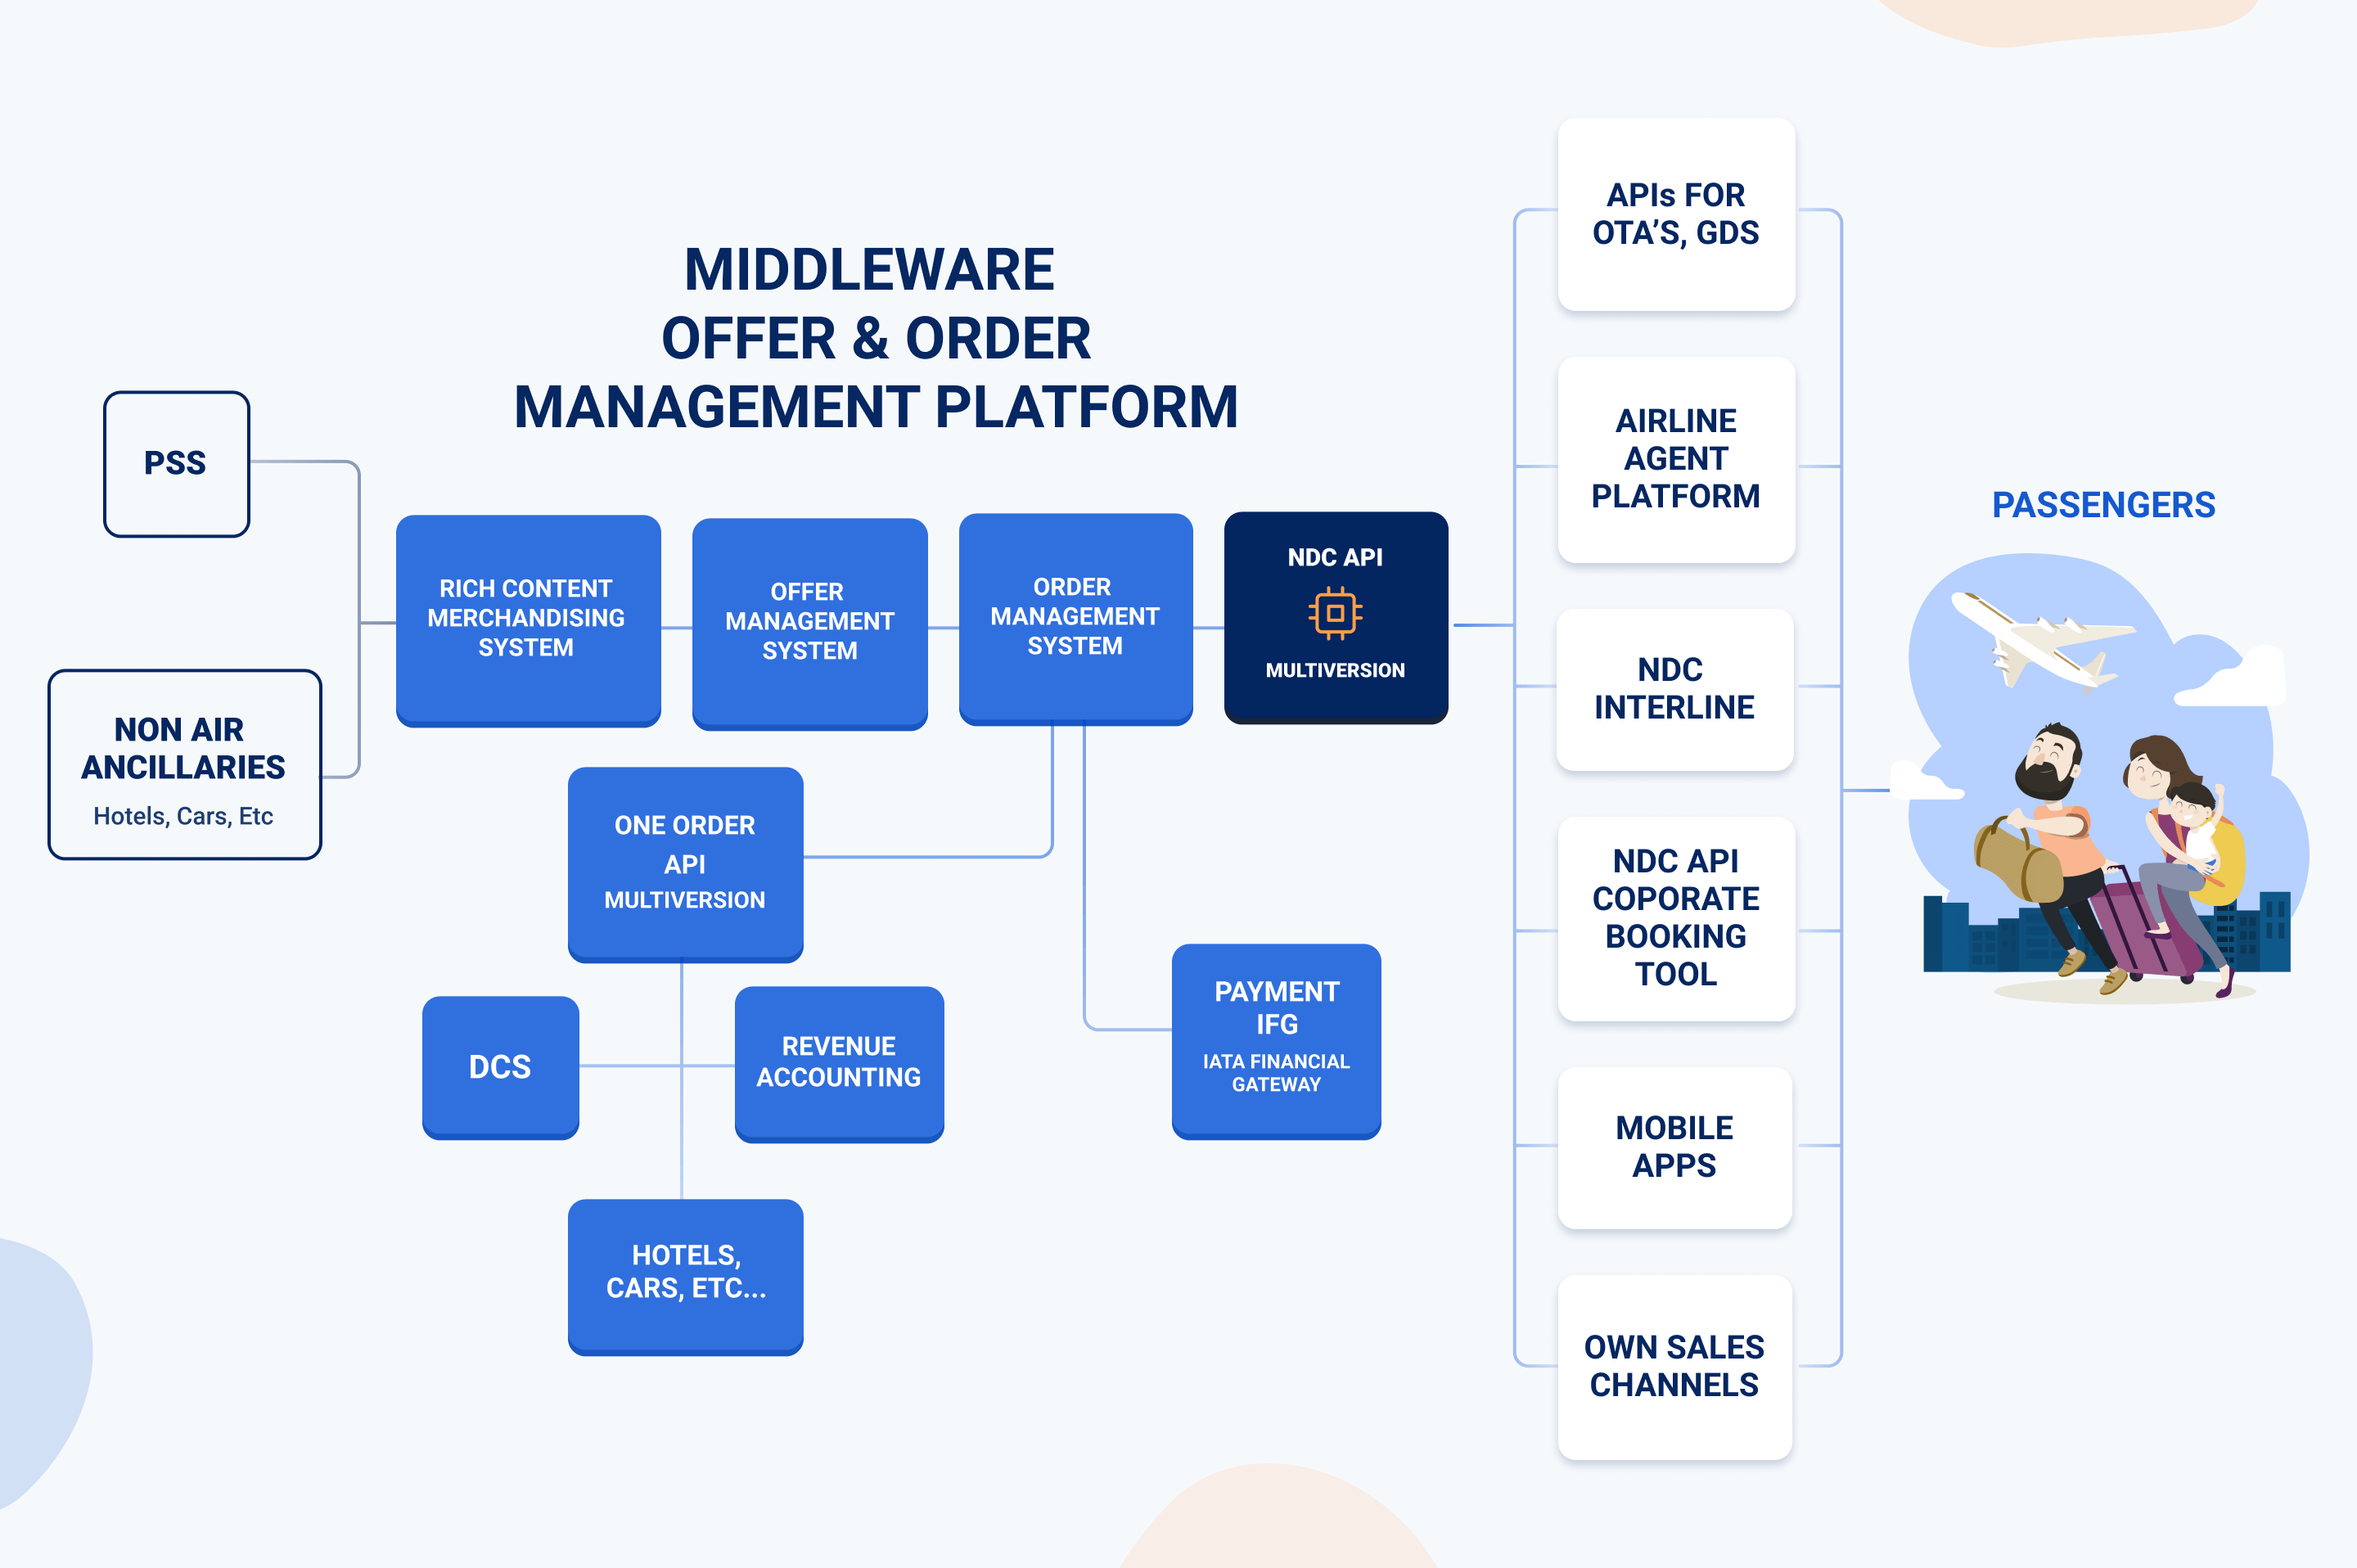 NDC Gateway for Airlines